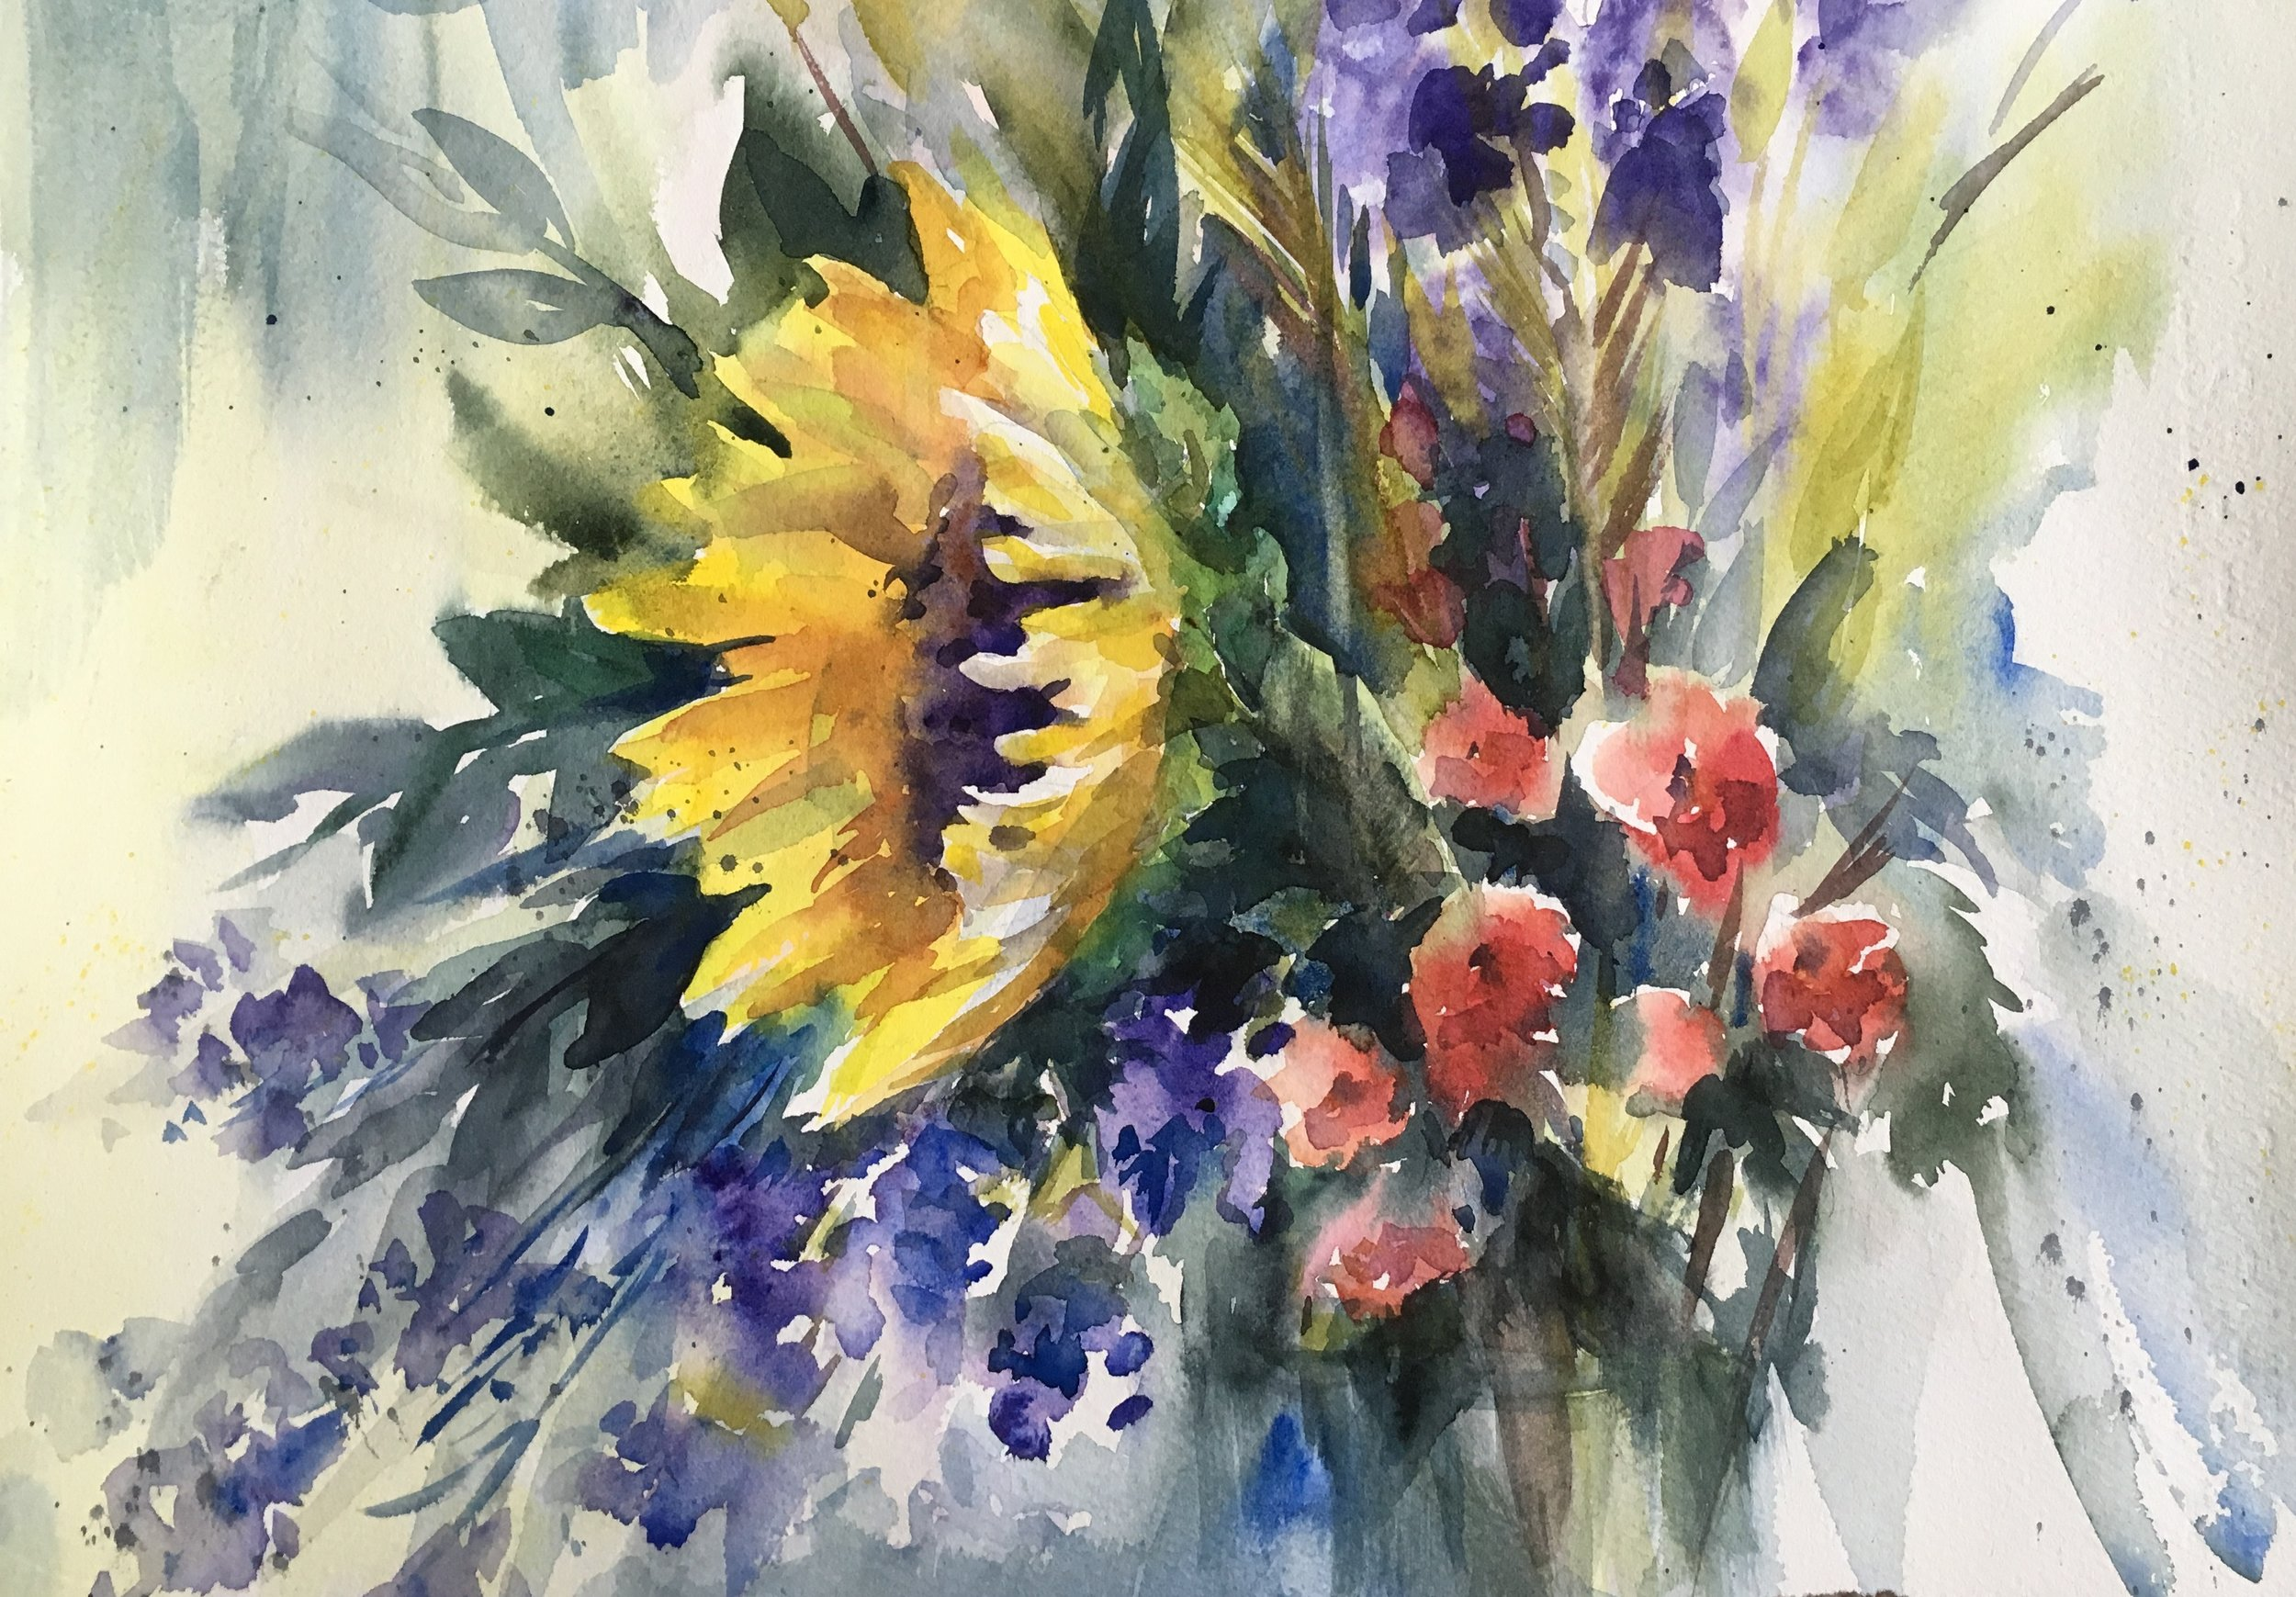 """""""Ready for summer"""" 16x20, Watercolor on watercolor paper by Svetlana Howe"""